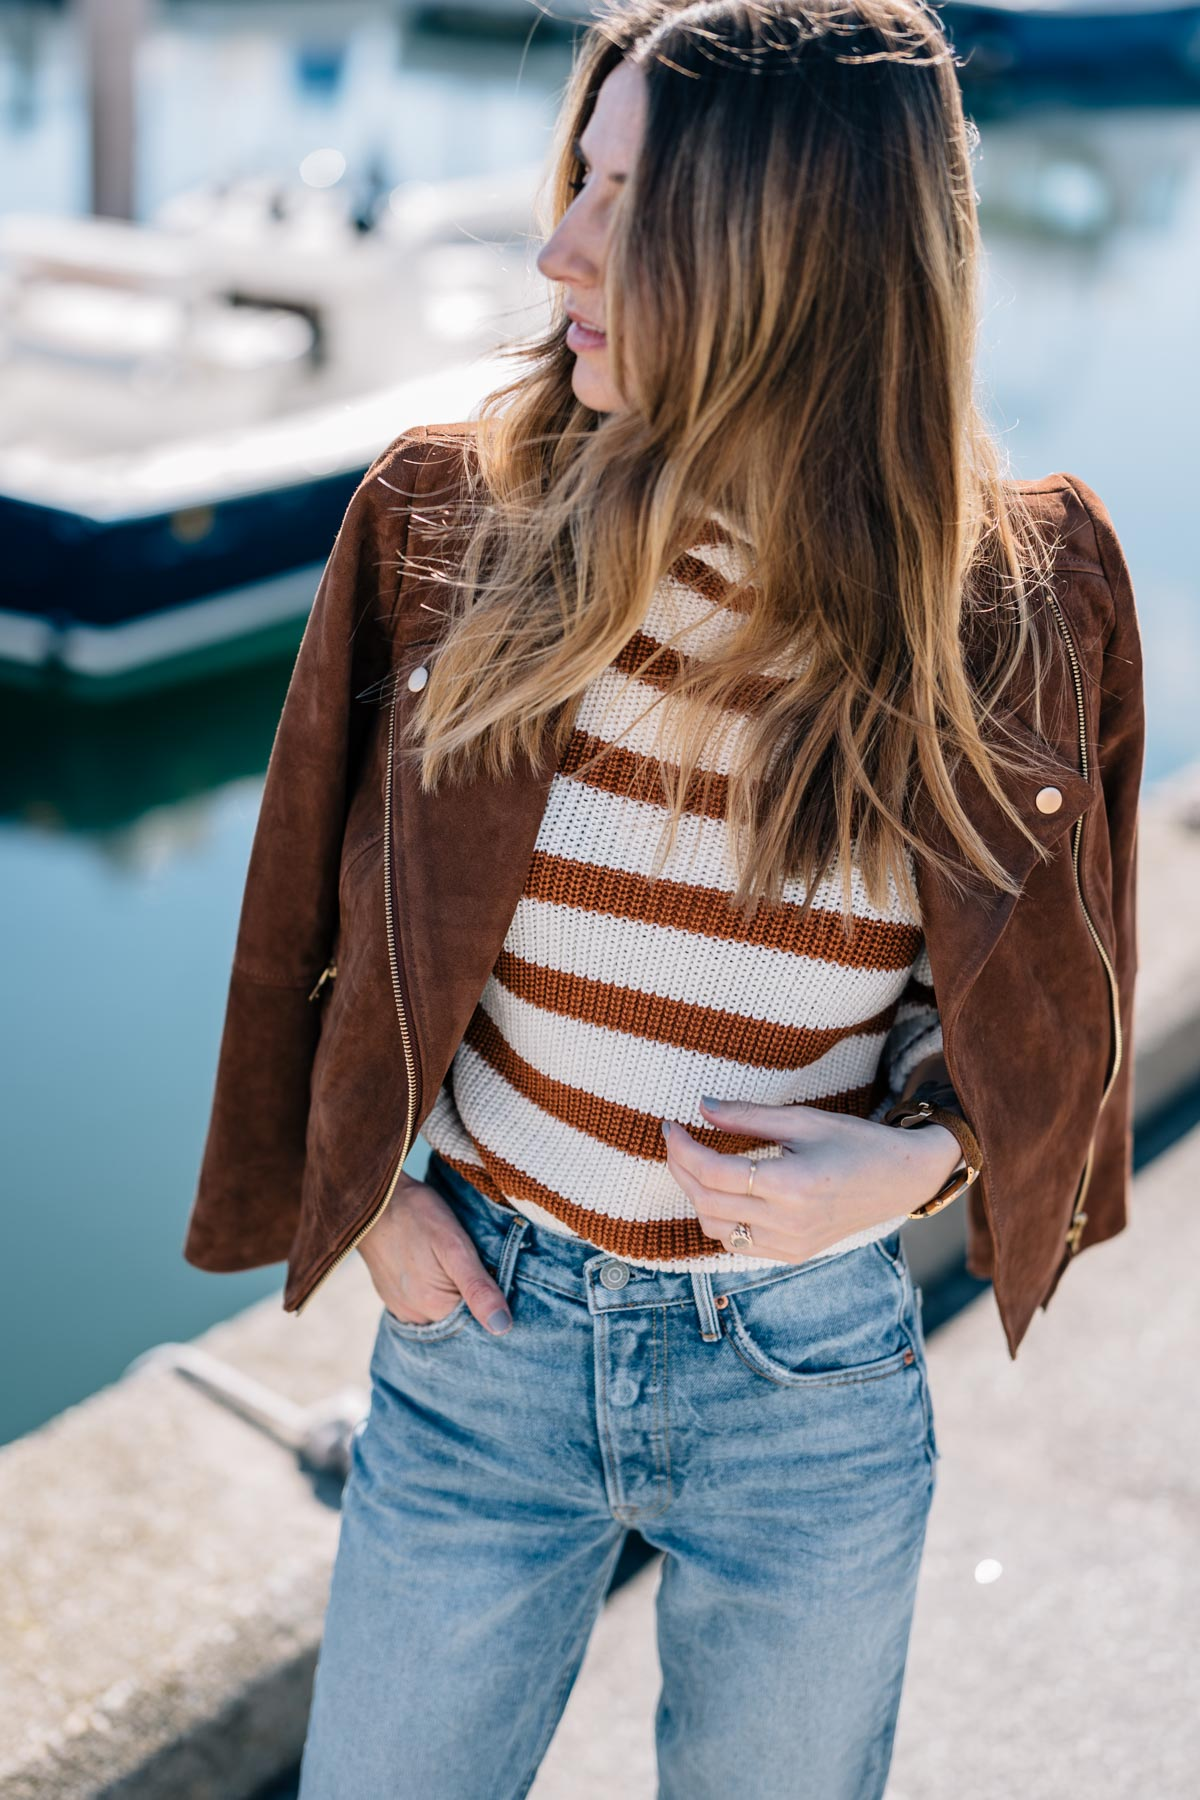 Jess Ann Kirby styles Autumn maple with a suede Moto jacket for fall